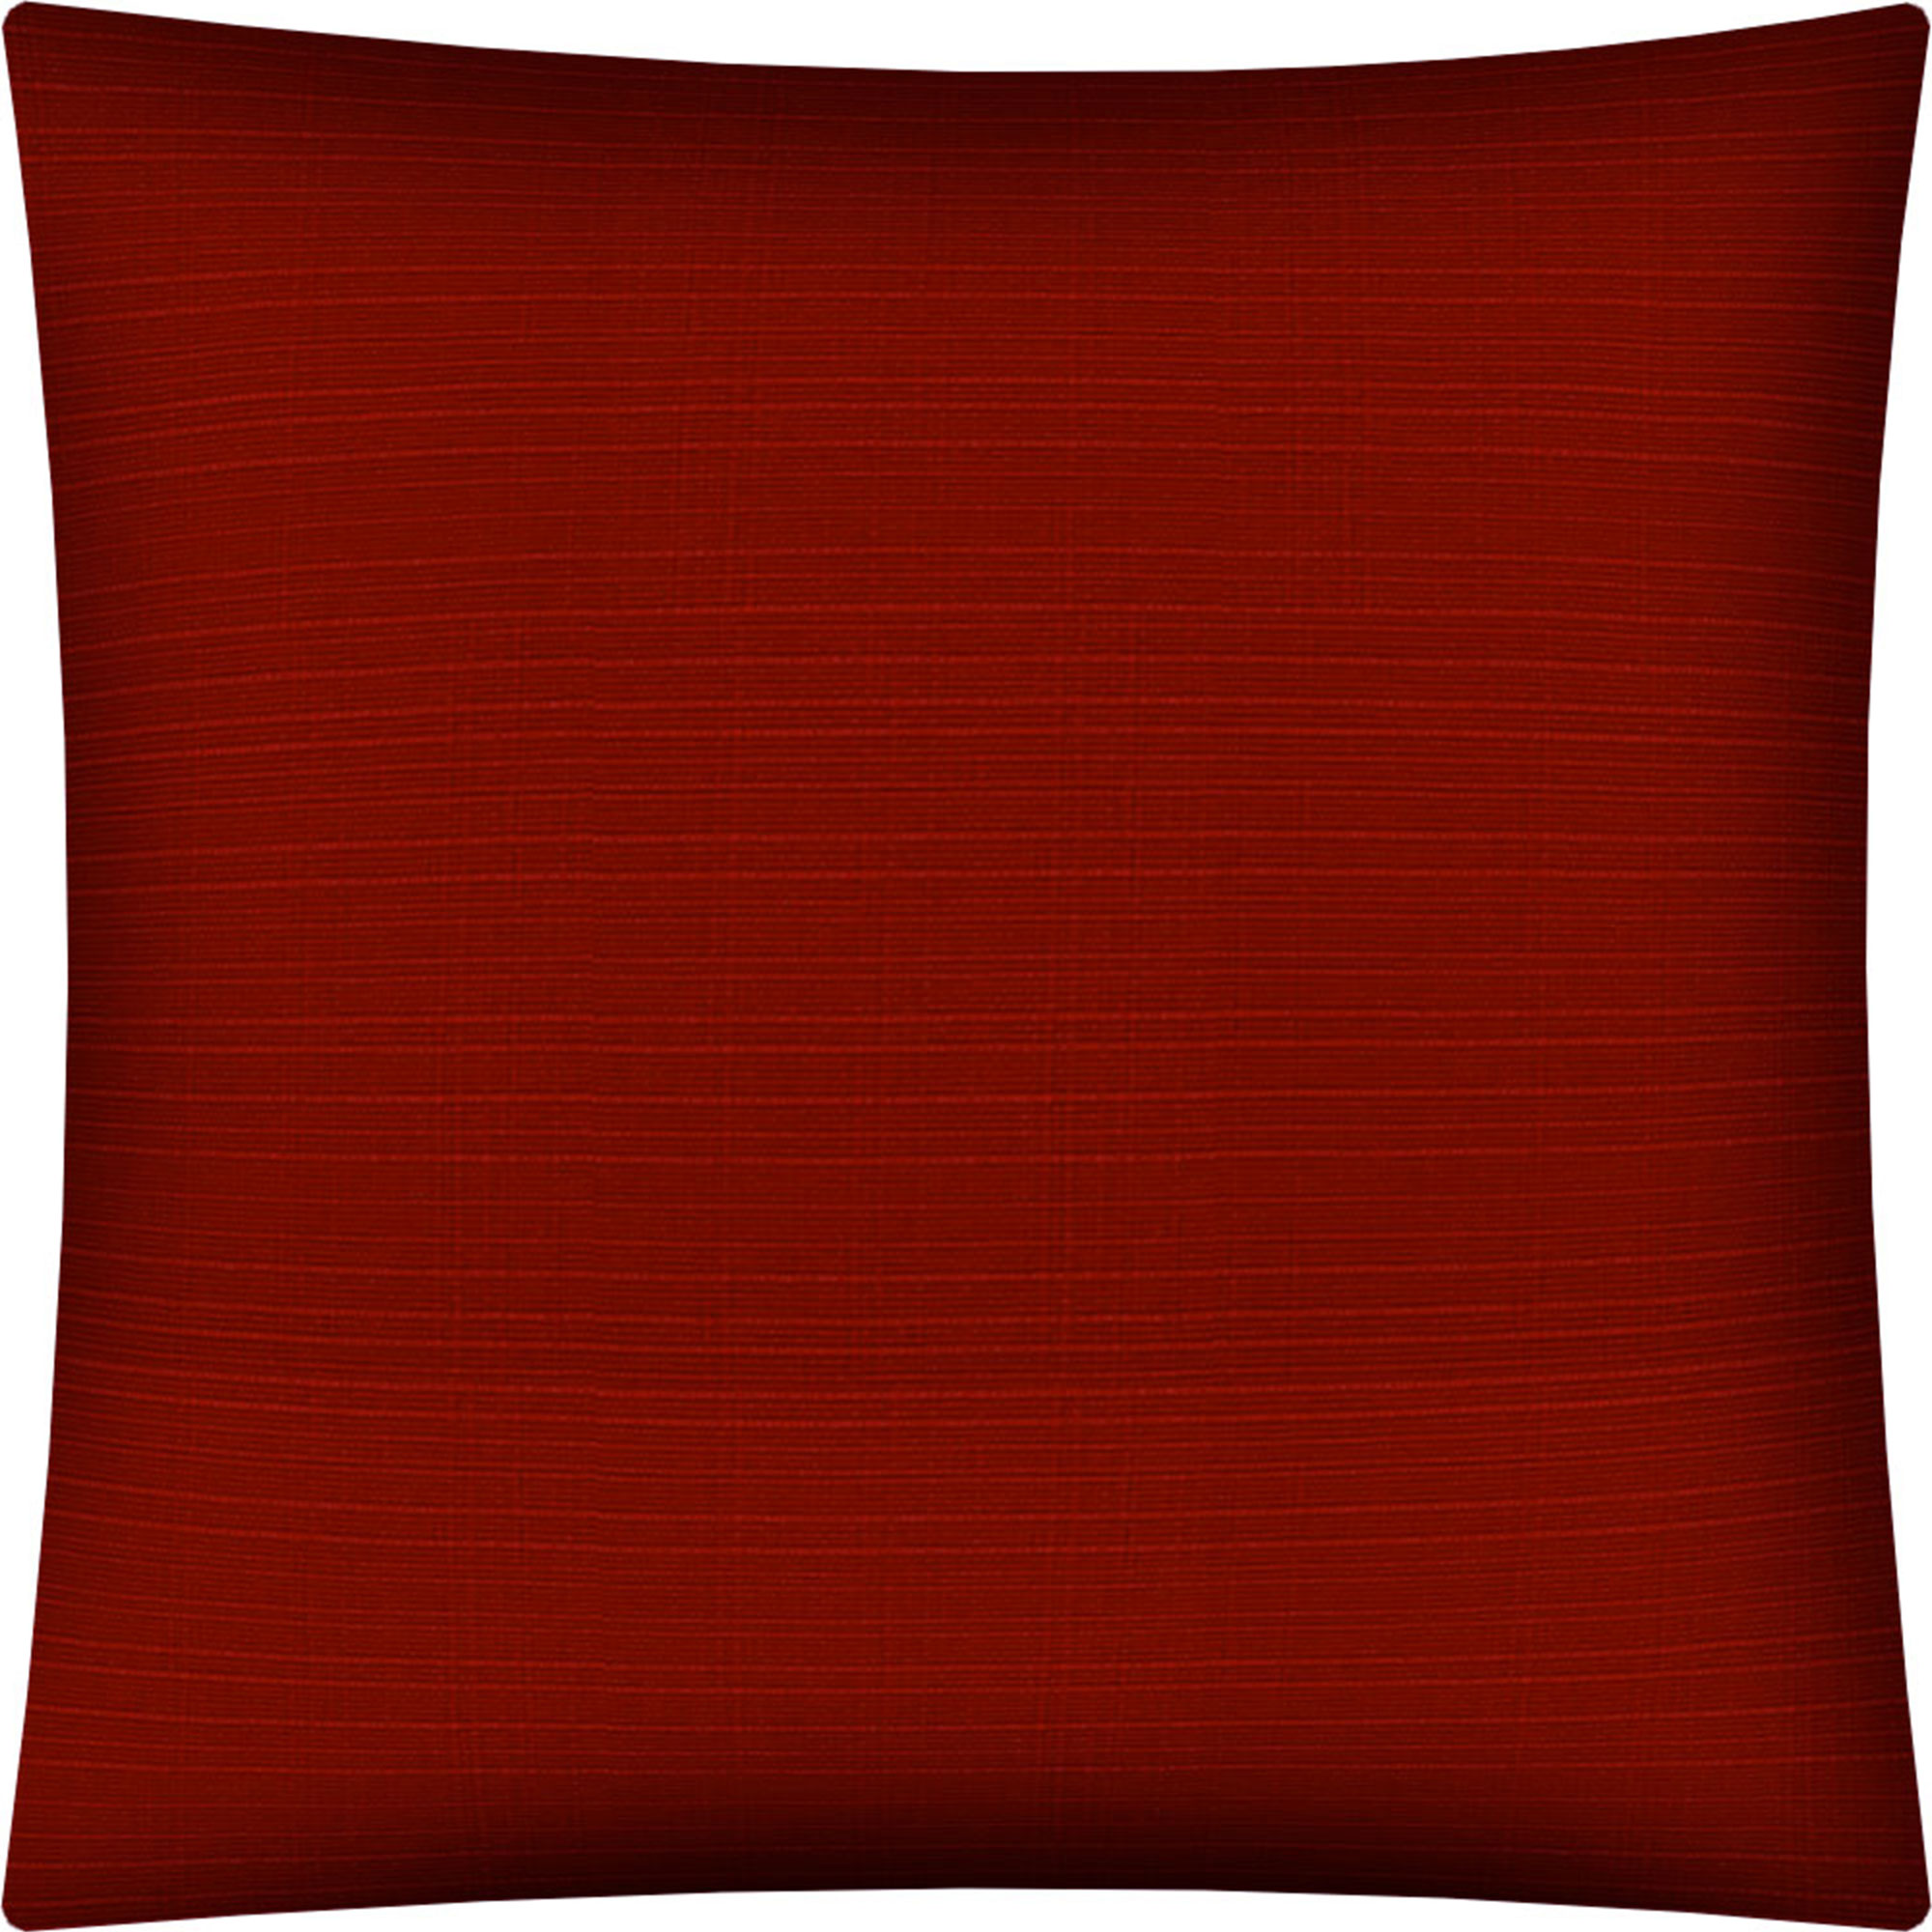 FORMA Burnt rosso Indoor/Outdoor Pillows - Sewn Closure   Set of 2   5448fb